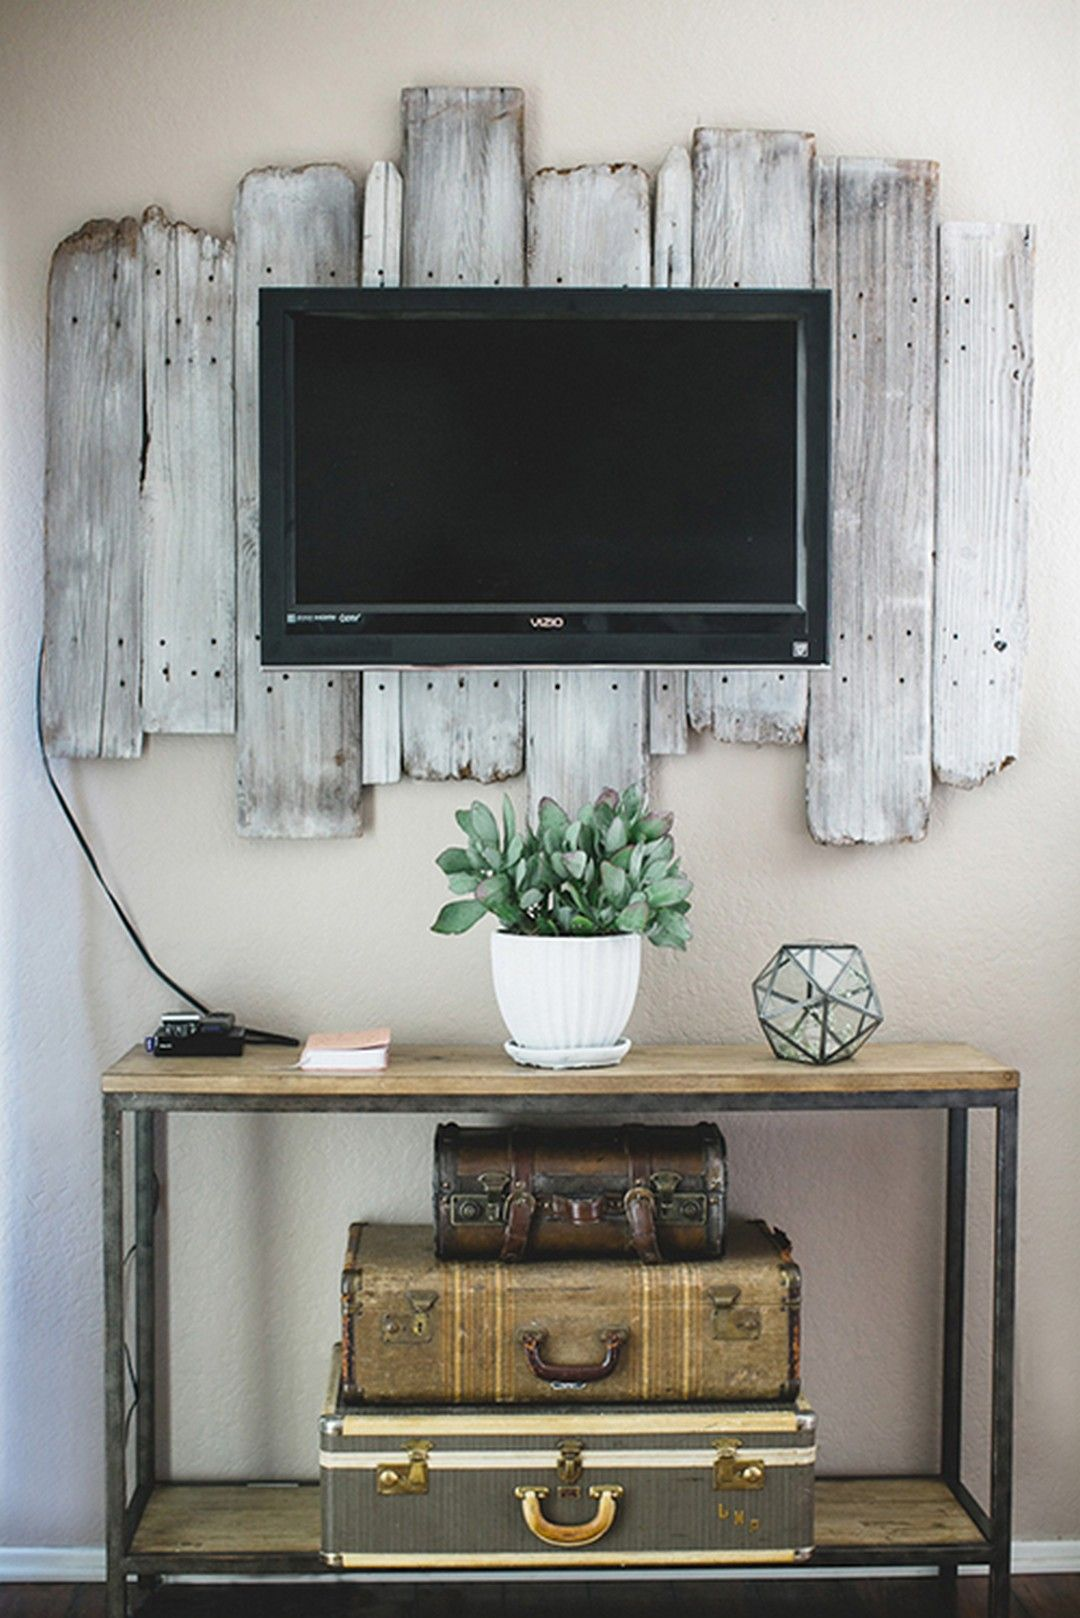 122 Cheap, Easy and Simple DIY Rustic Home Decor Ideas | Mein haus ...